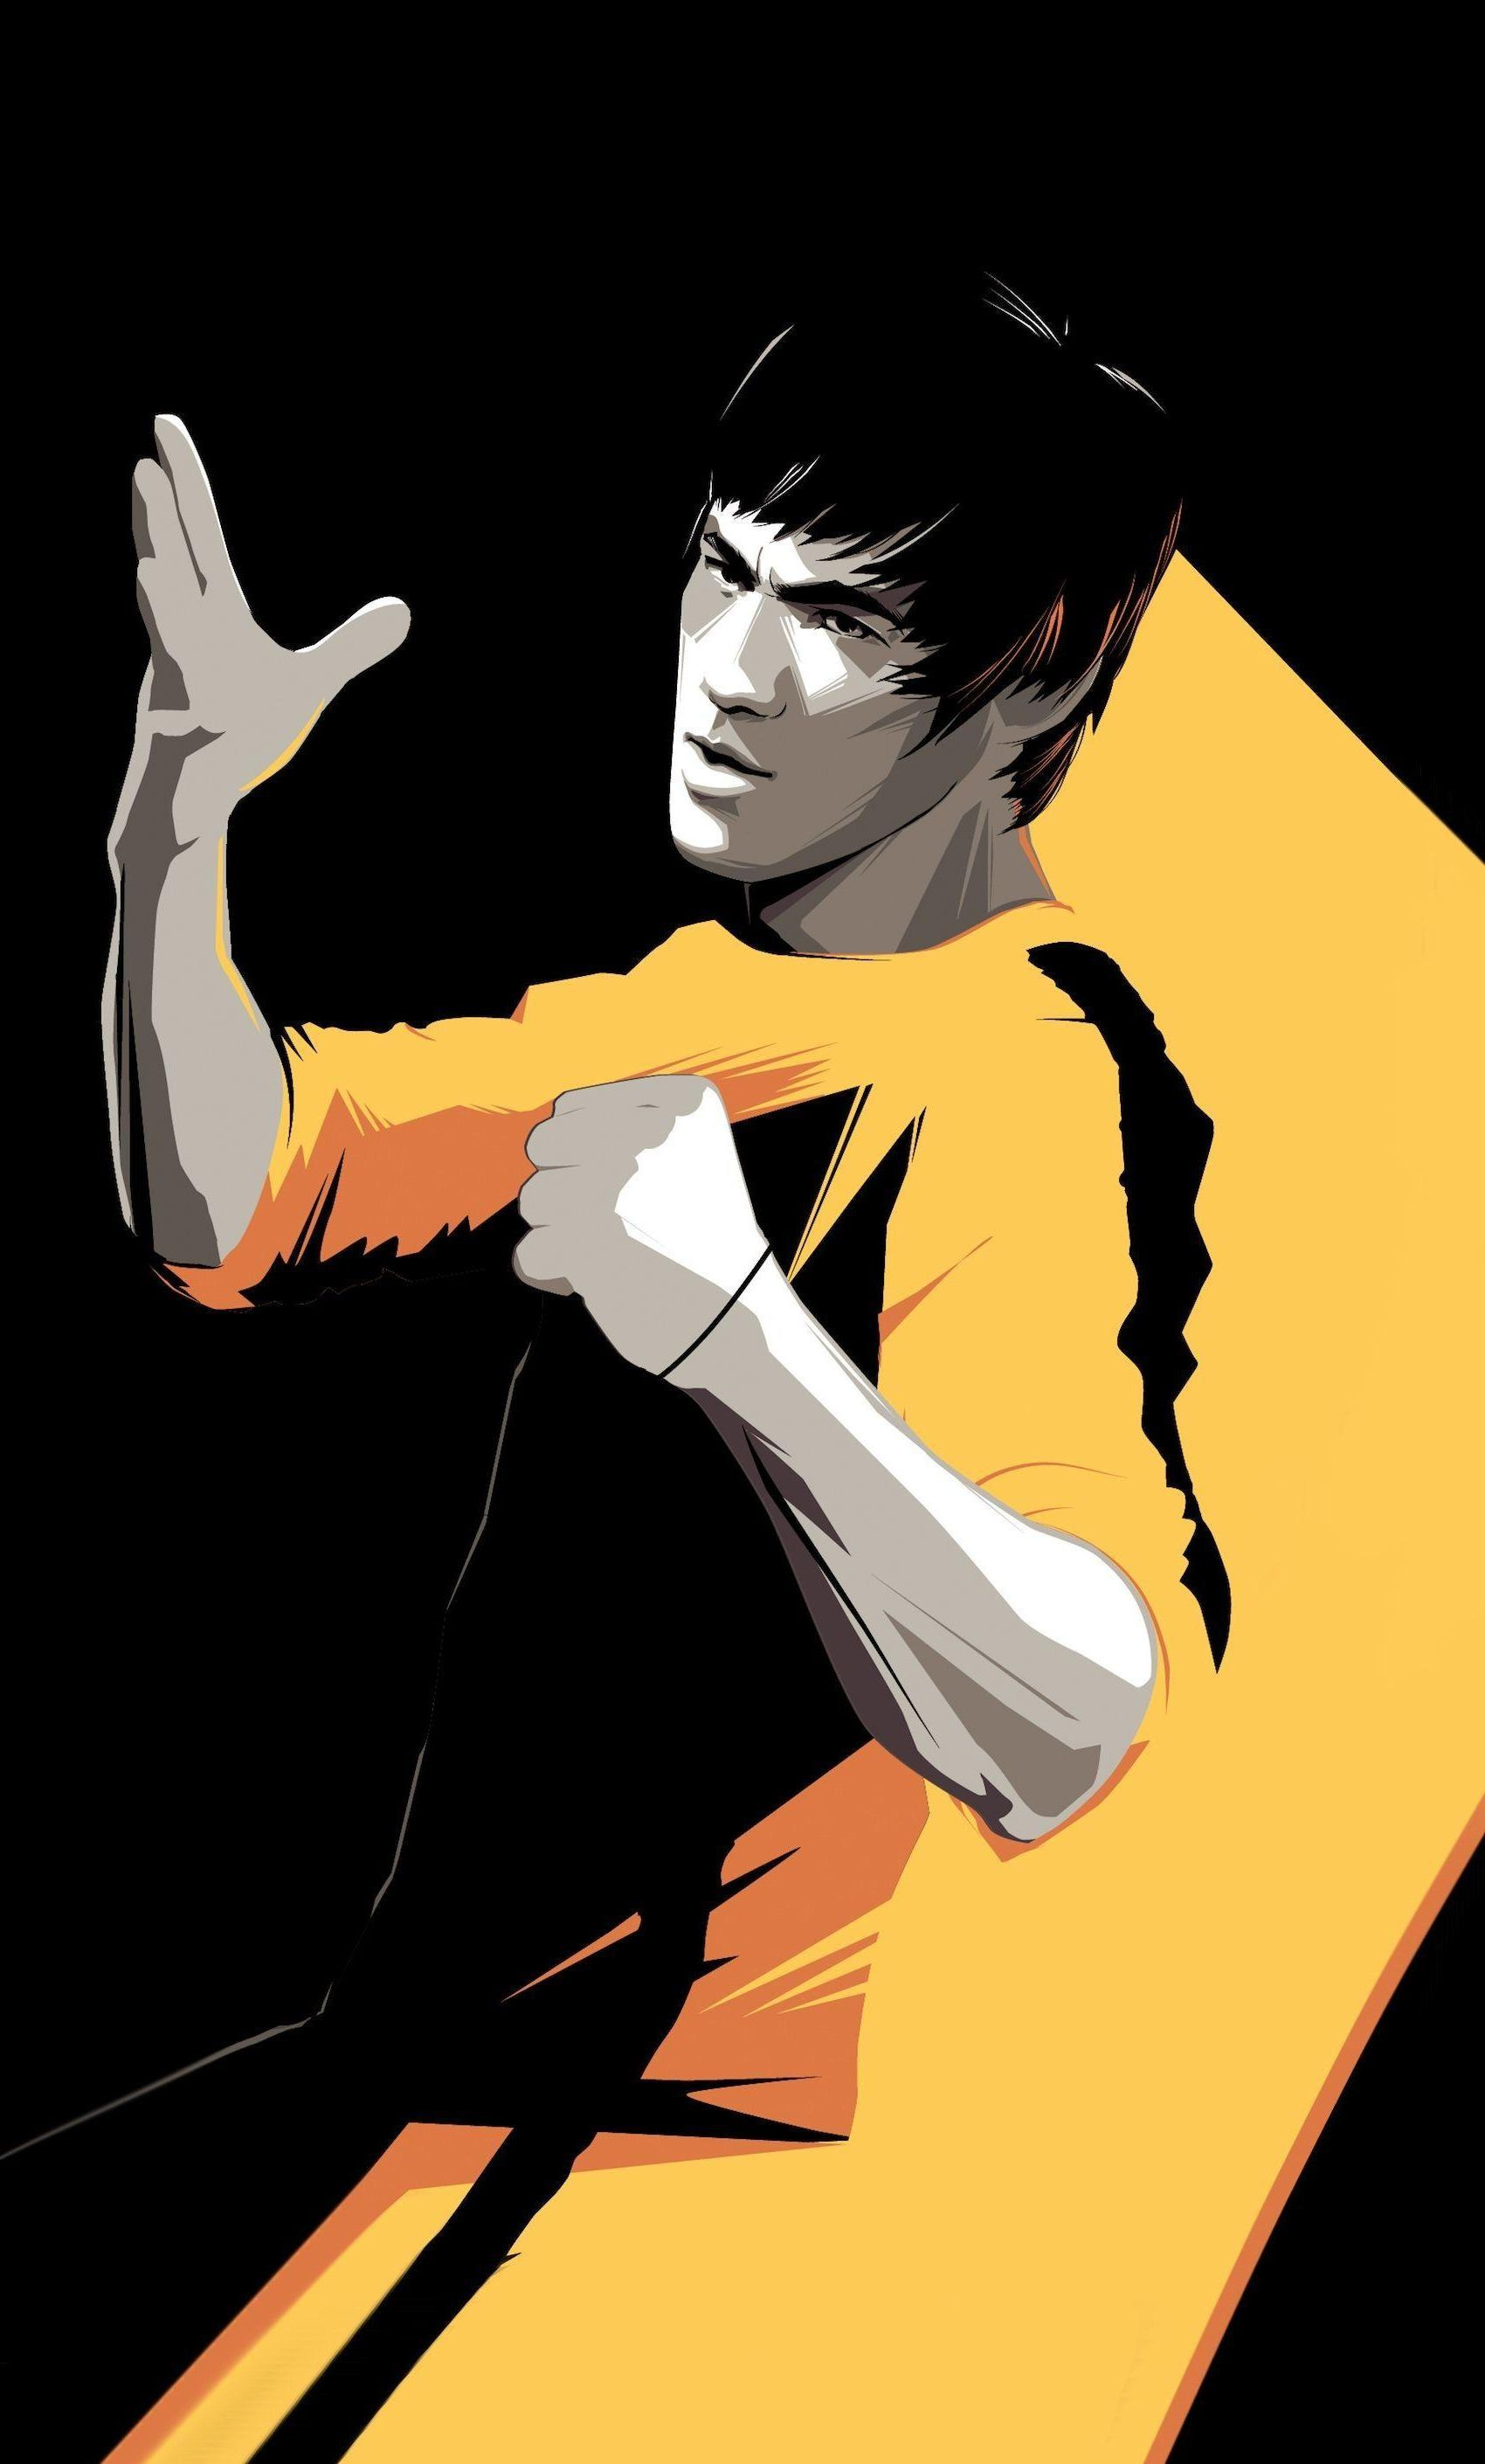 Bruce Lee Wallpaper For Mobile Phone Tablet Desktop Computer And Other Devices Hd And 4k Wallpapers In 2021 Bruce Lee Bruce Lee Art Bruce Lee Martial Arts